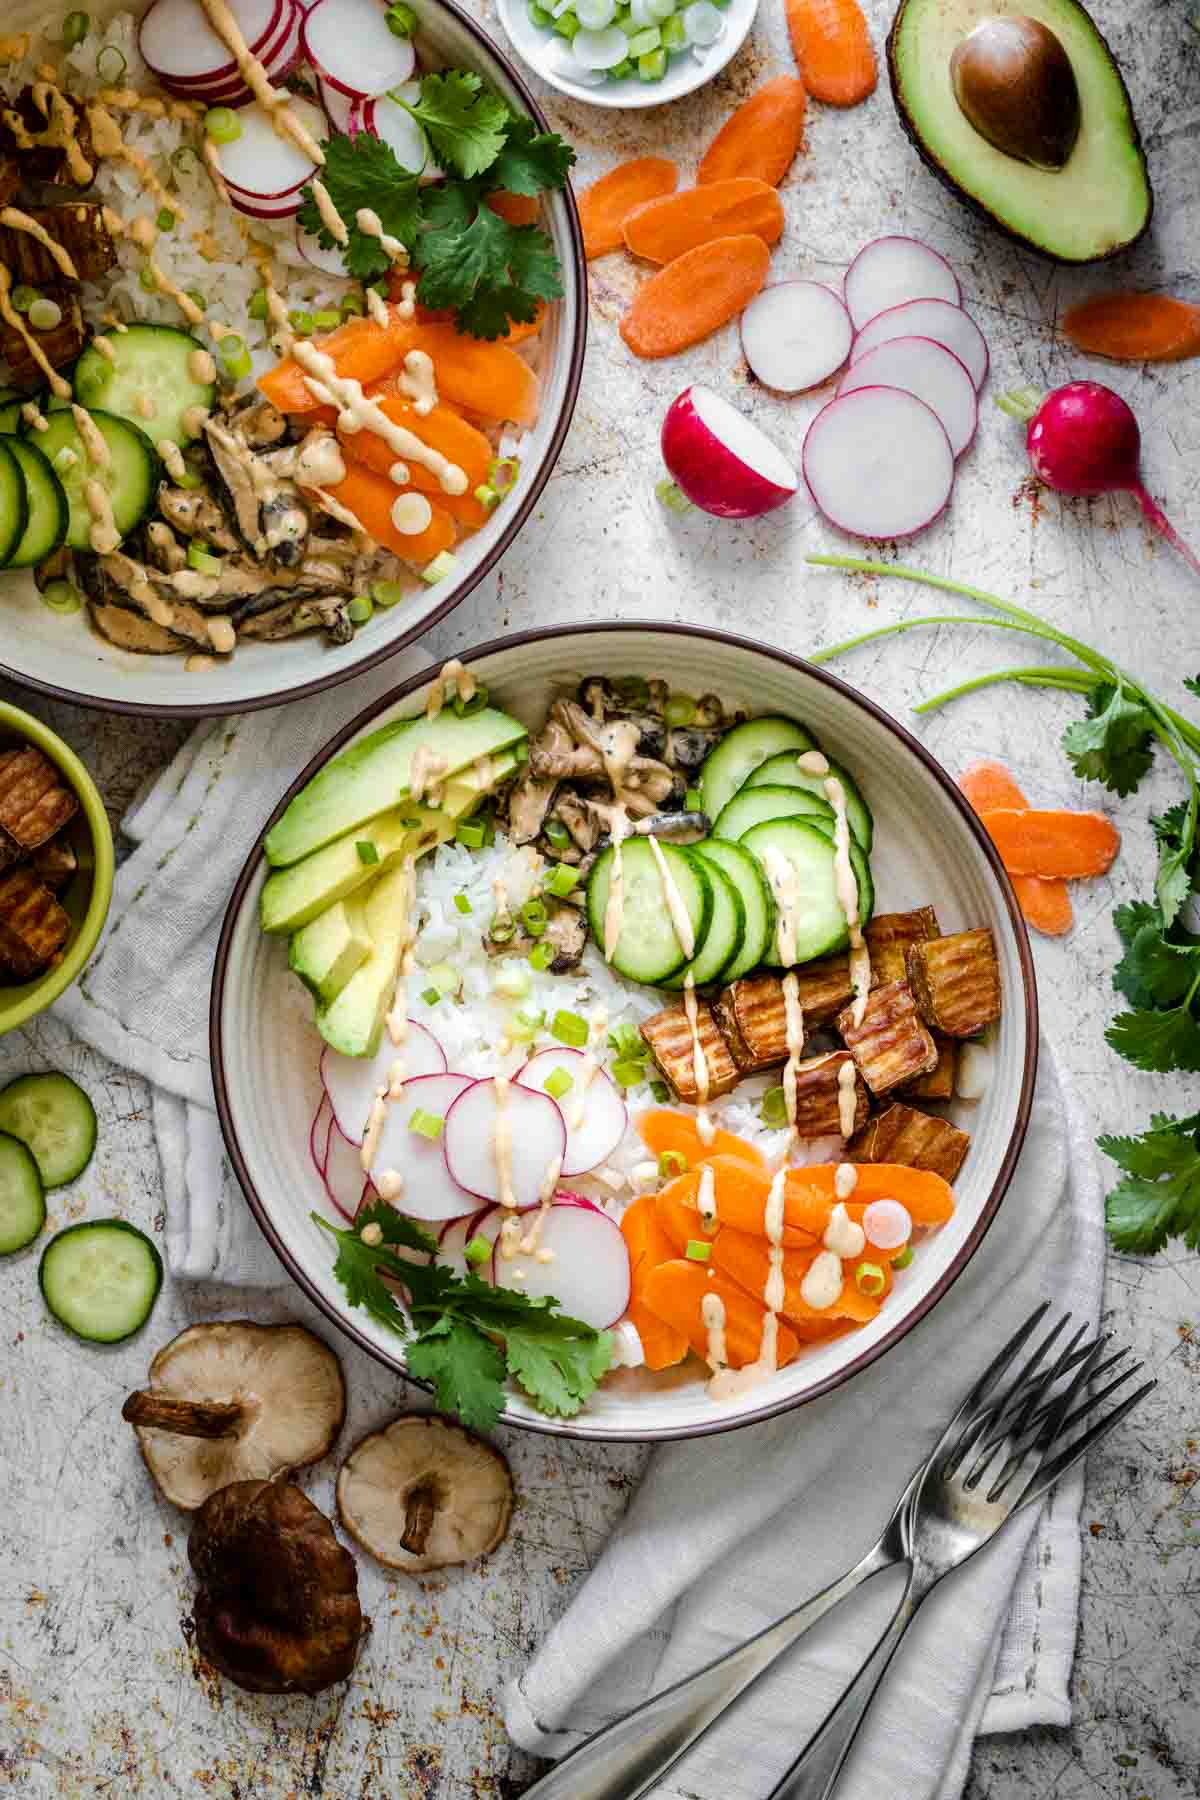 Top view of a sushi bowl filled with veggies on a wooden surface